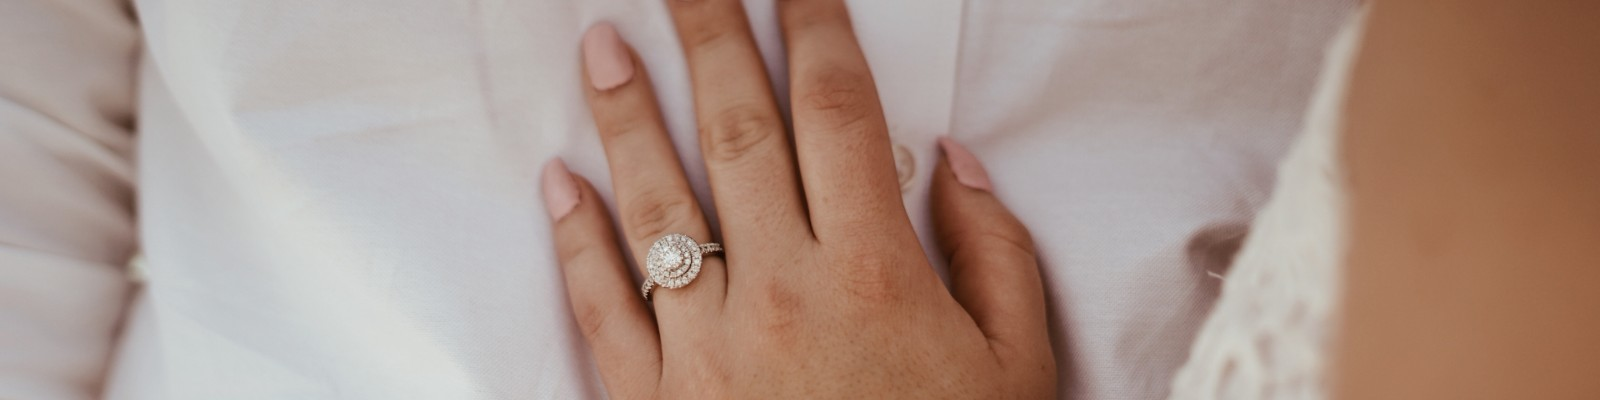 Engagement Ring Styles at Northeastern Fine Jewelry